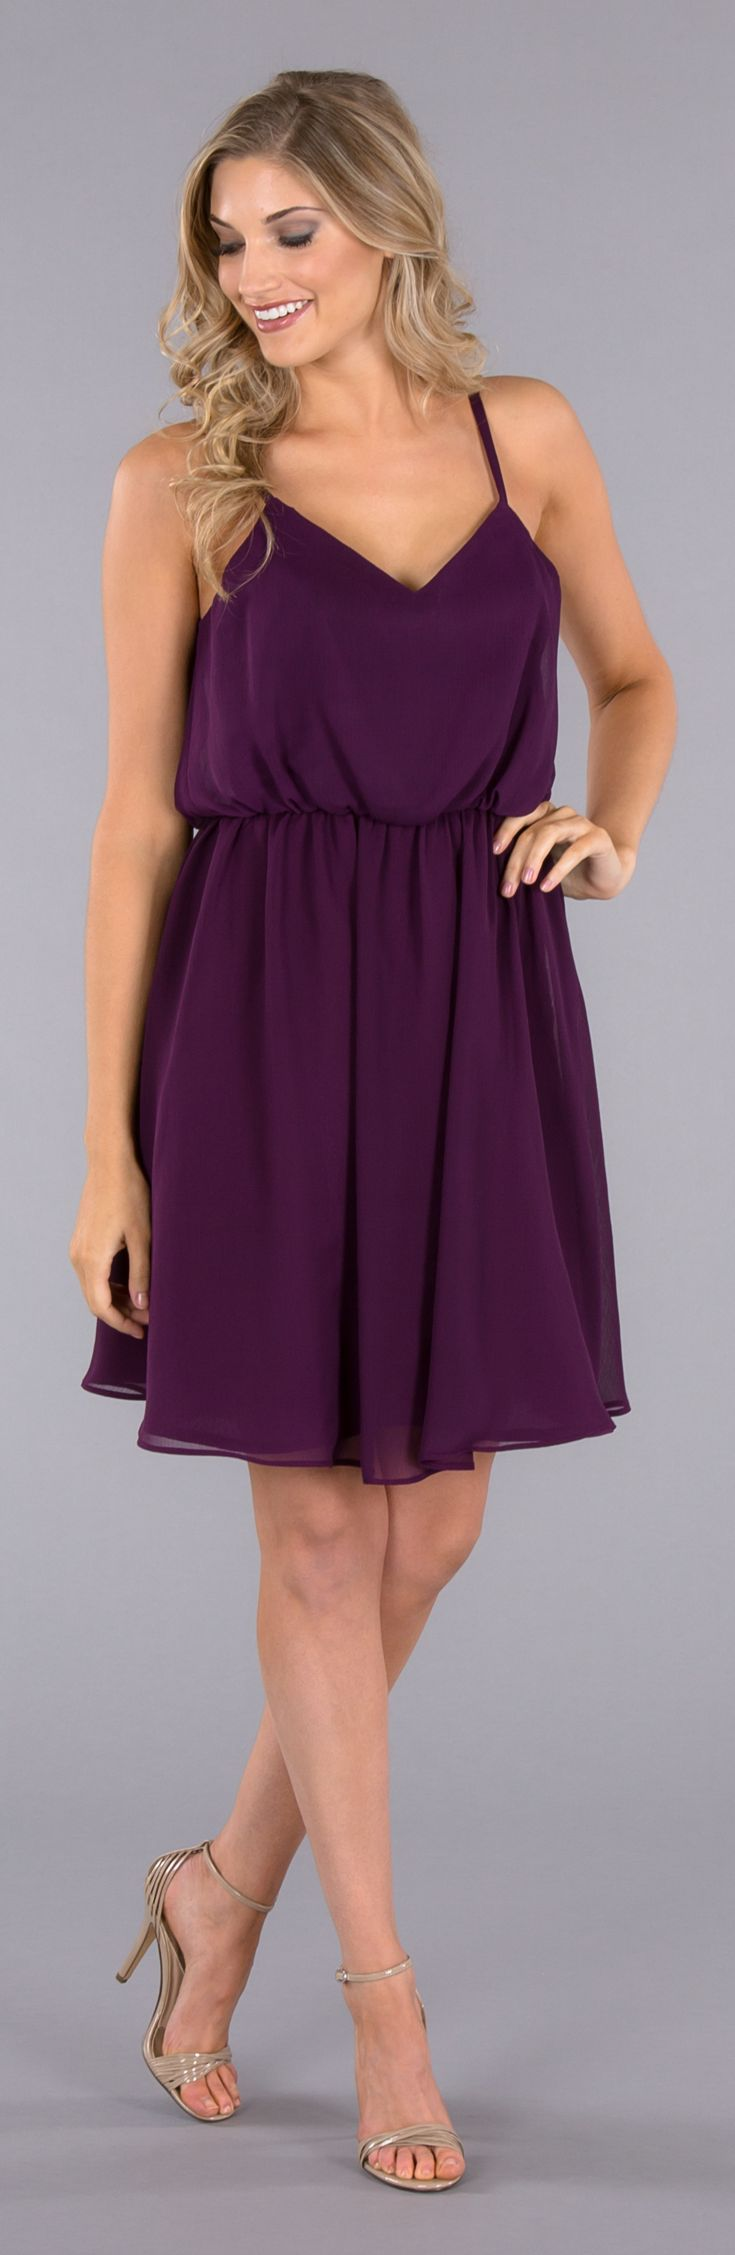 A short chiffon bridesmaid dress with a loose-fitting spaghetti strap top that your 'maids can wear over and over again!